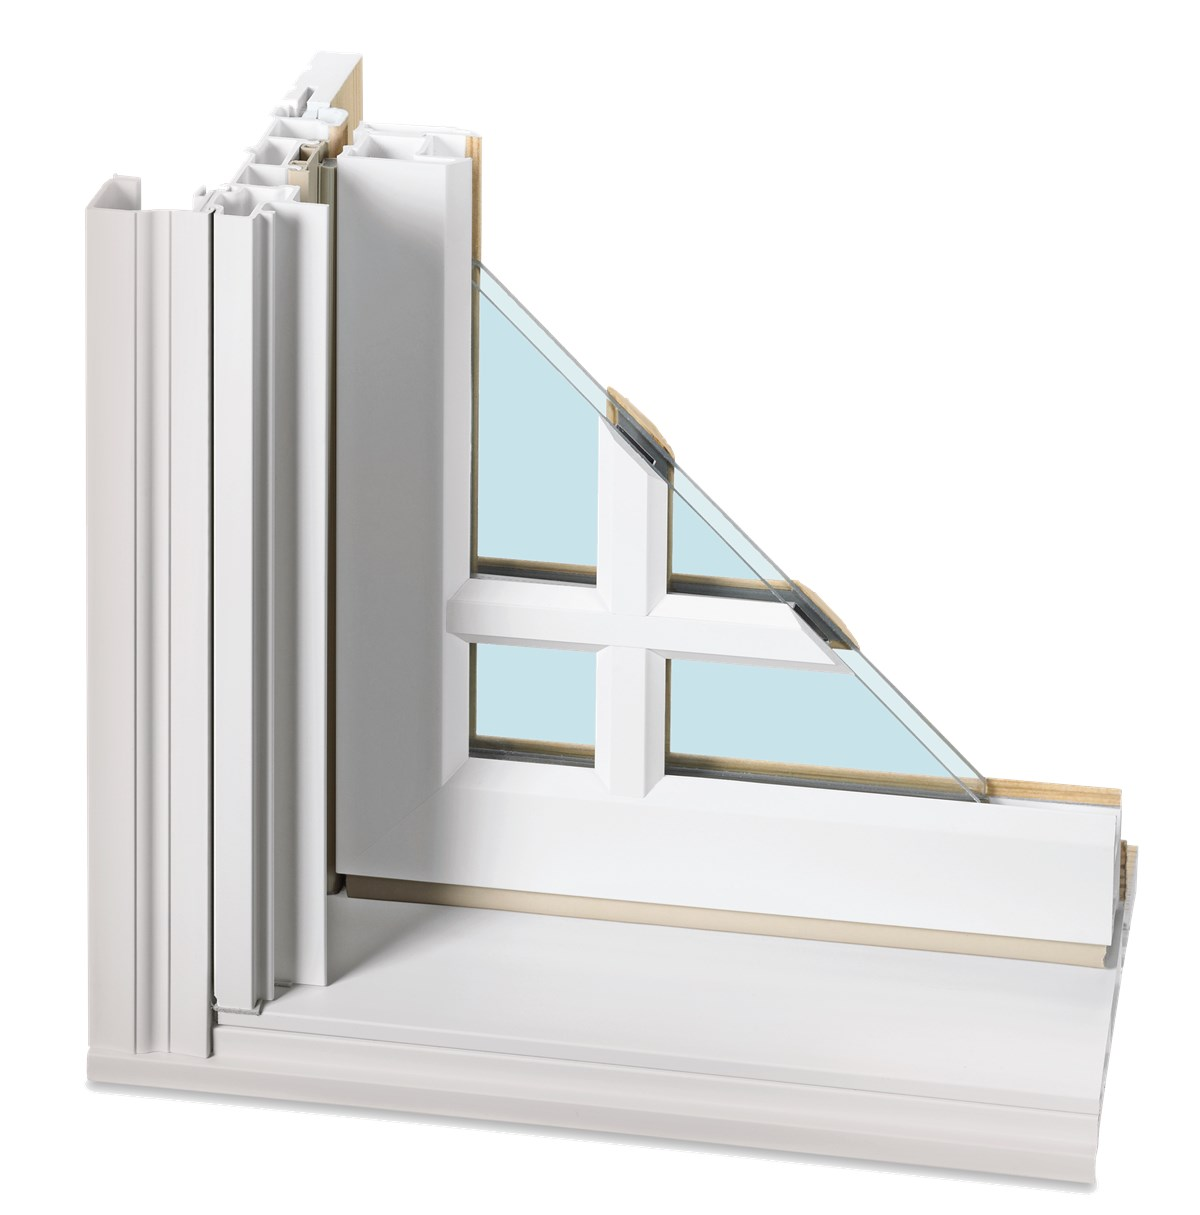 New england energy efficient windows boston energy for Energy efficient windows